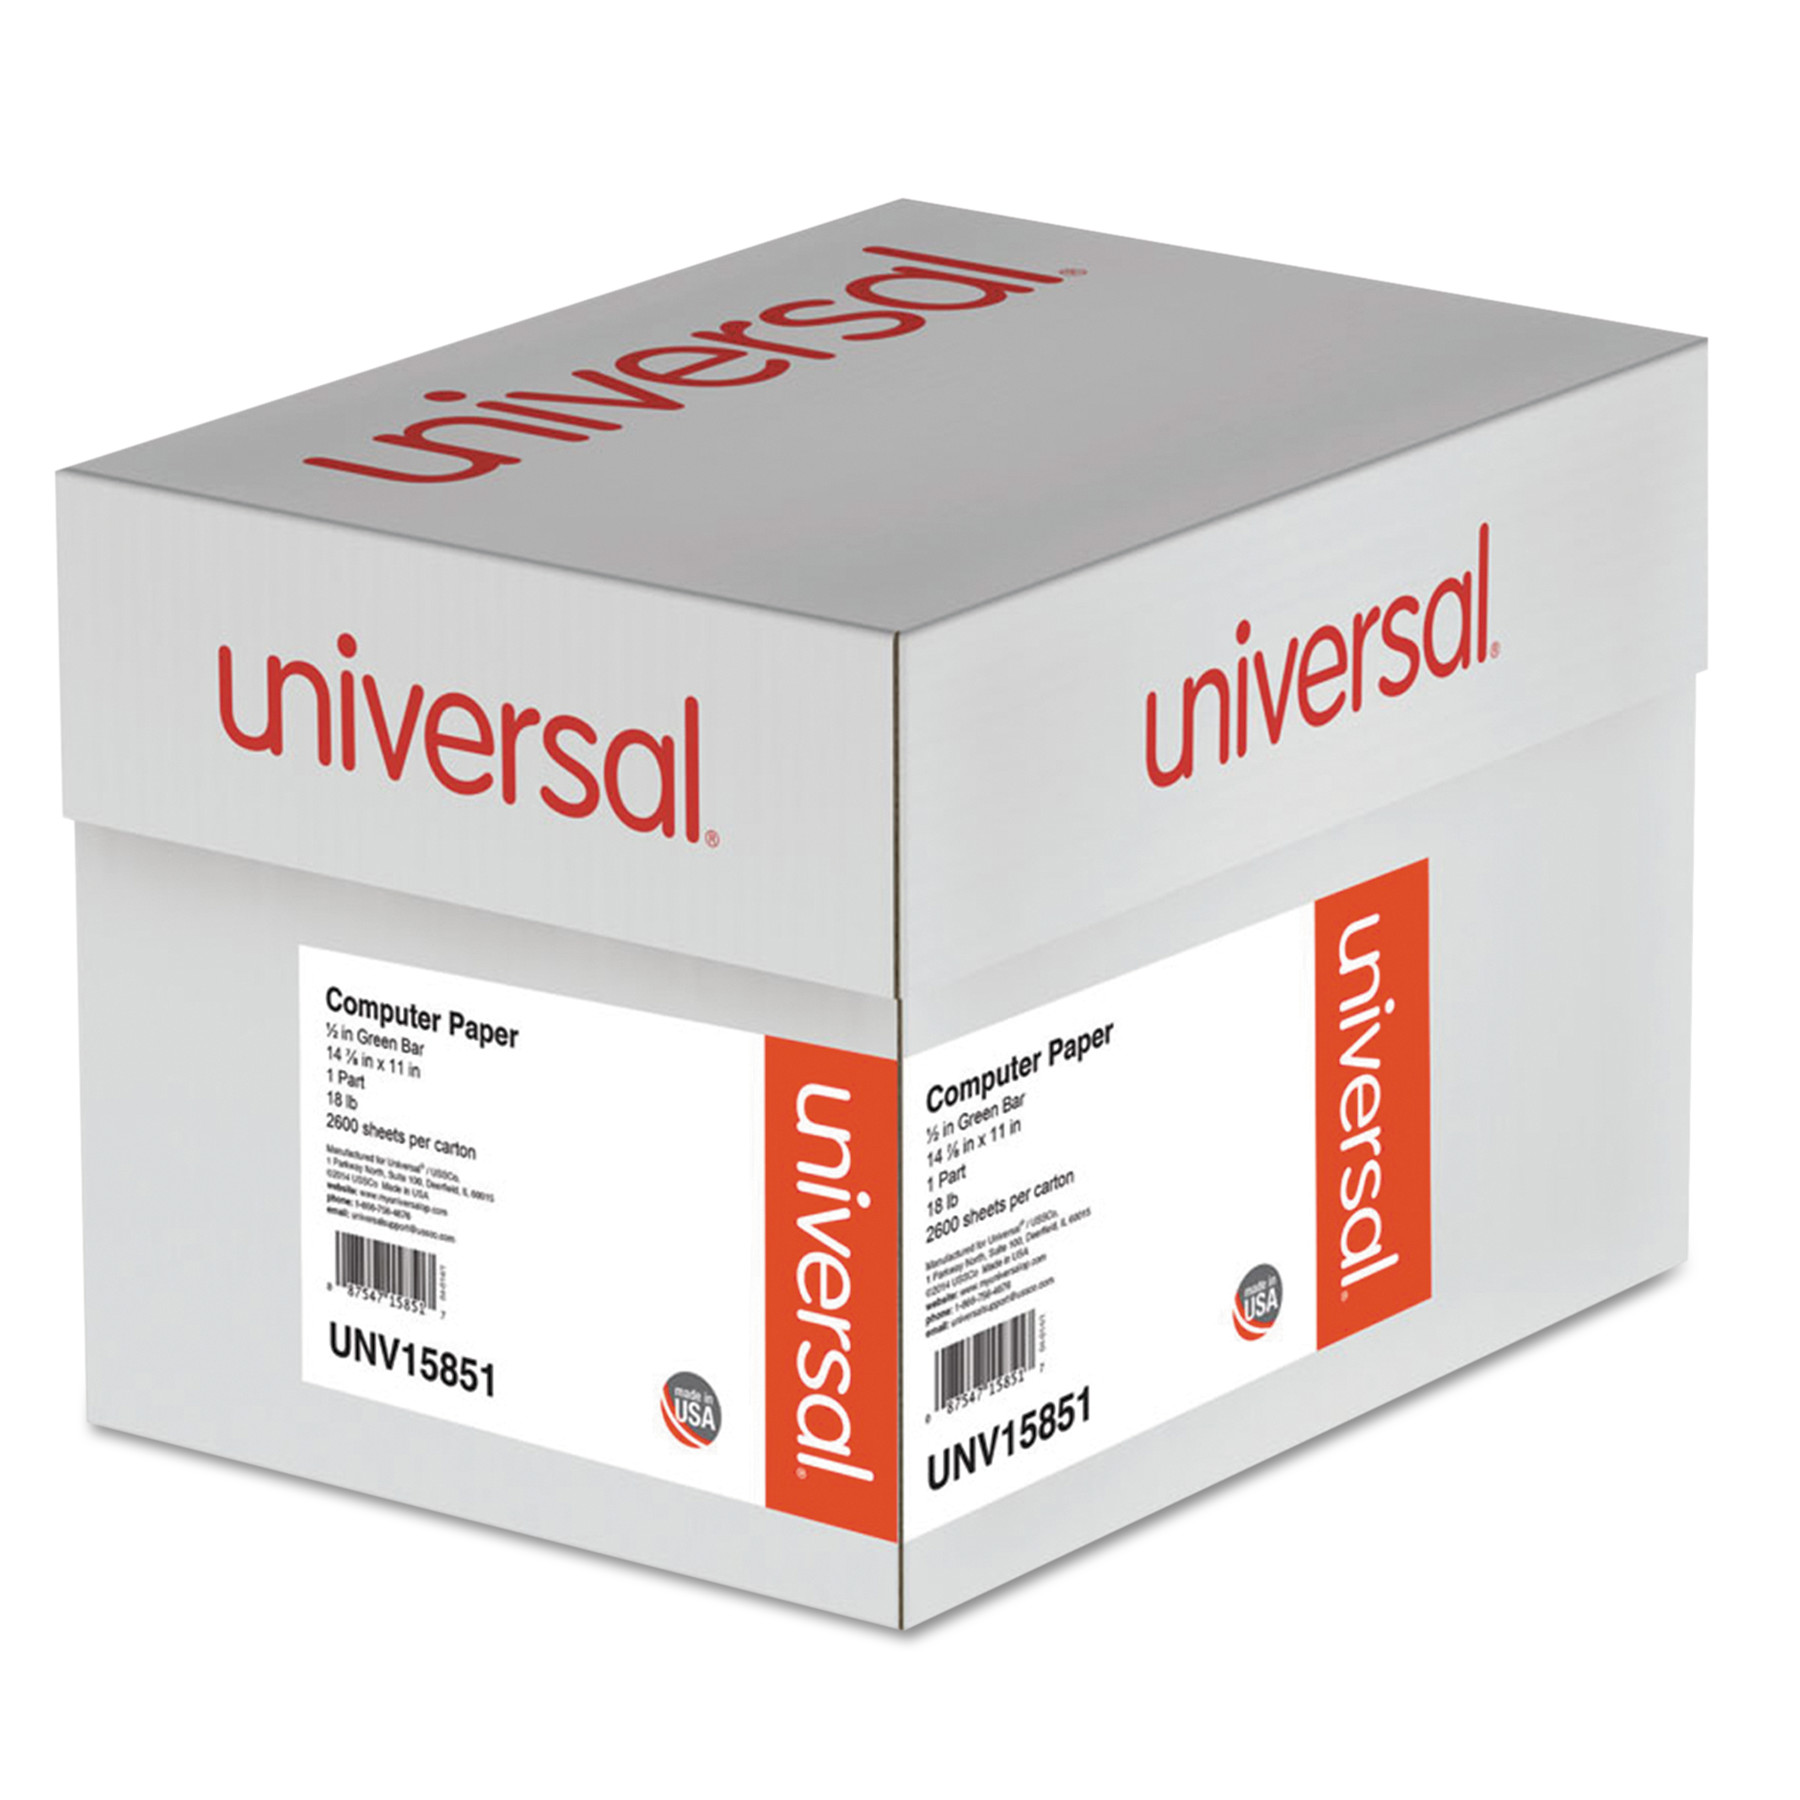 Universal Green Bar Computer Paper, 18lb, 14-7/8 x 11, Perforated Margins, 2600 Sheets